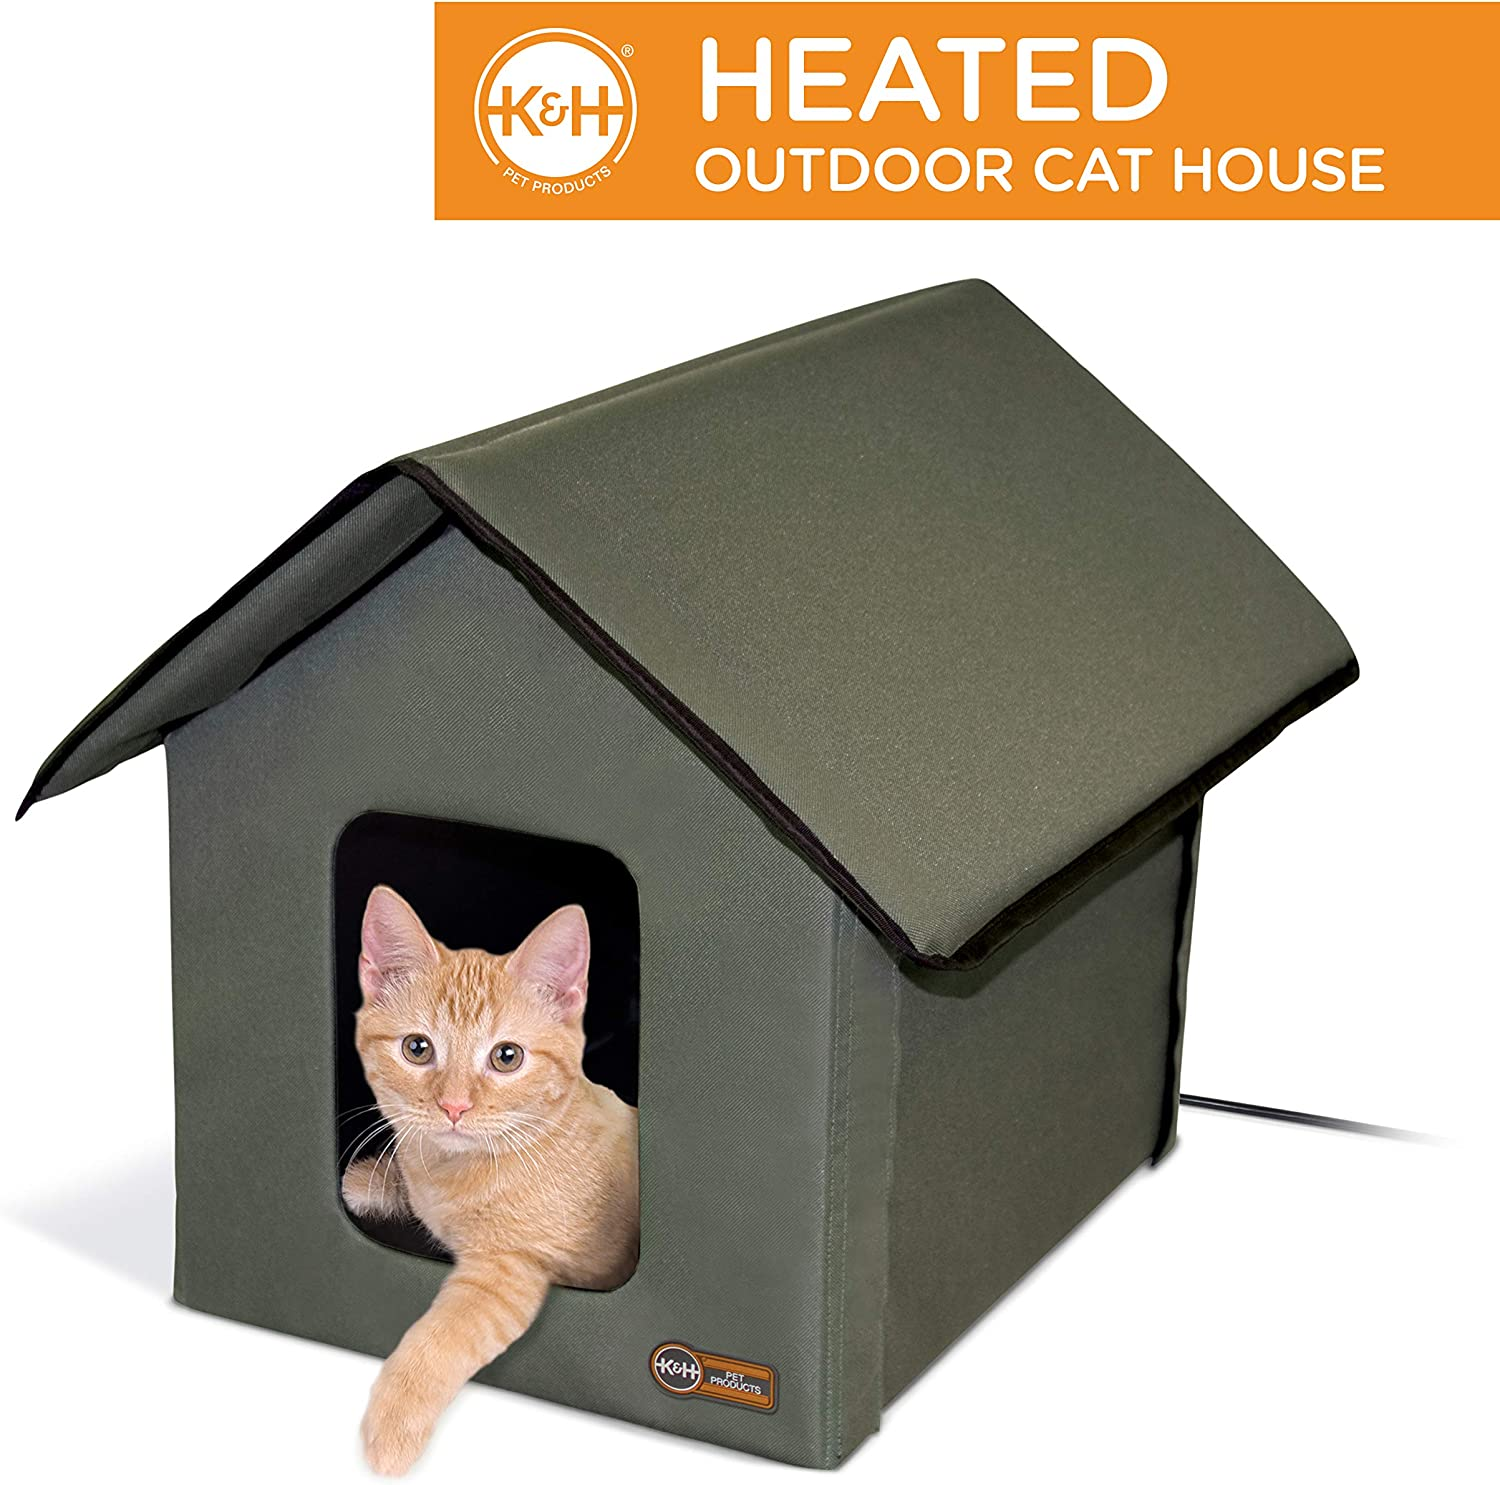 1. K&H Pet Products Outdoor Heated Kitty House